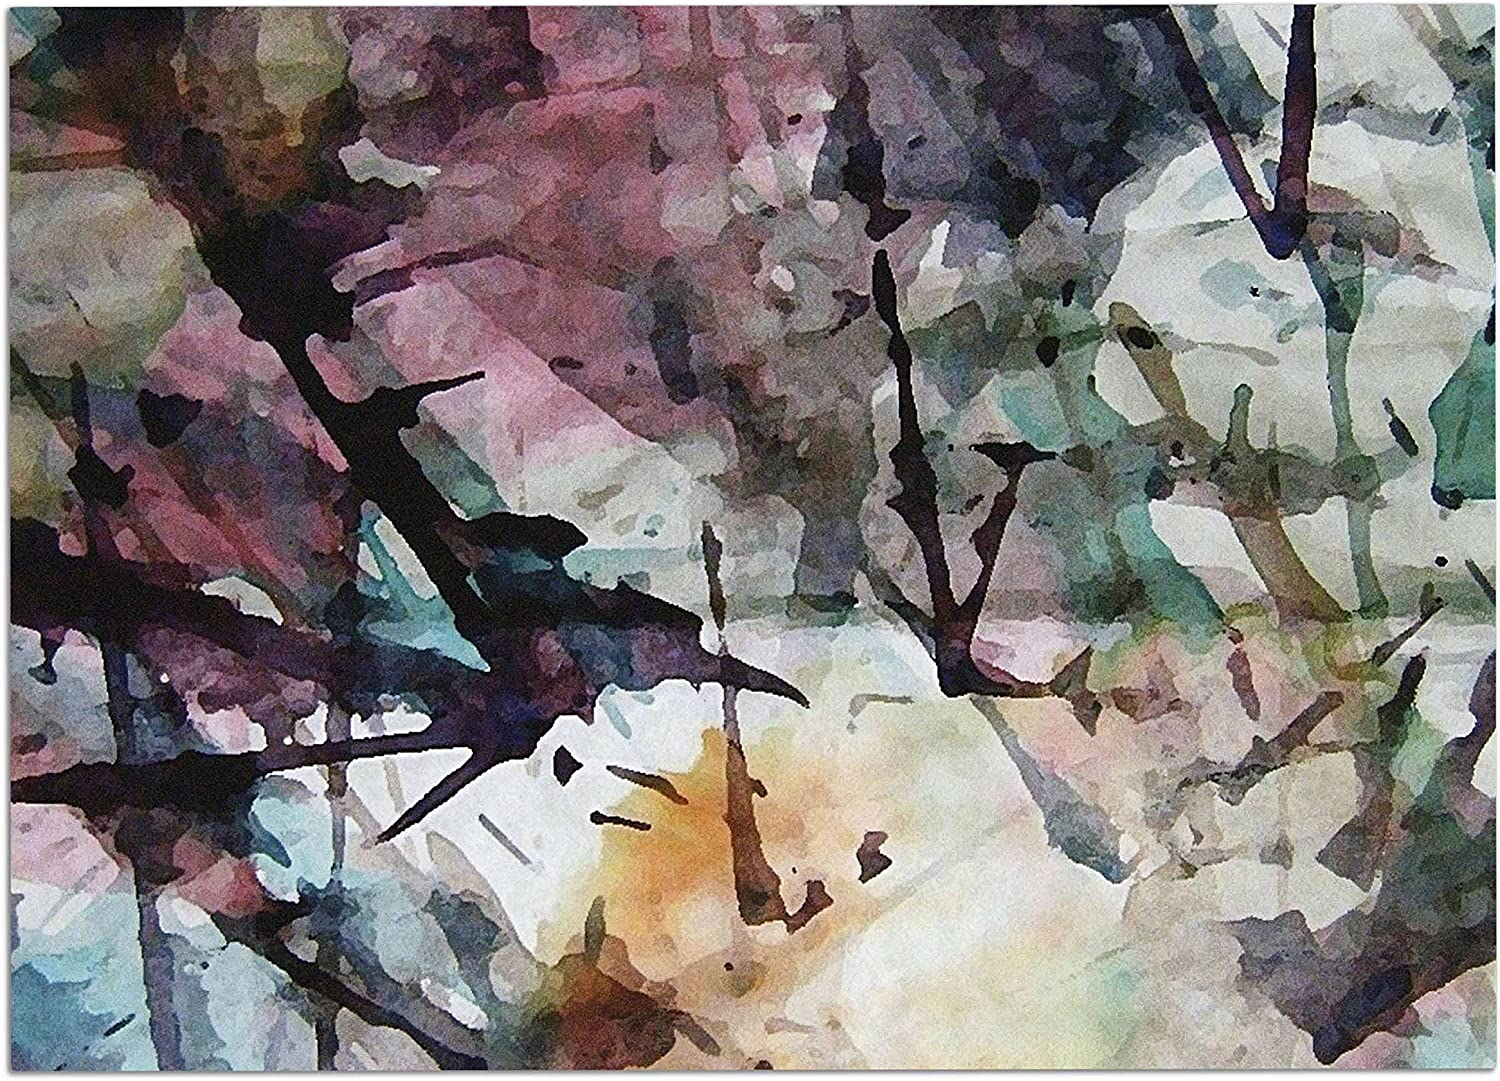 KESS InHouse MS6029ADM02 Malia Shields Abstract Trees Abstract Painting Dog Place Mat, 24  x 15